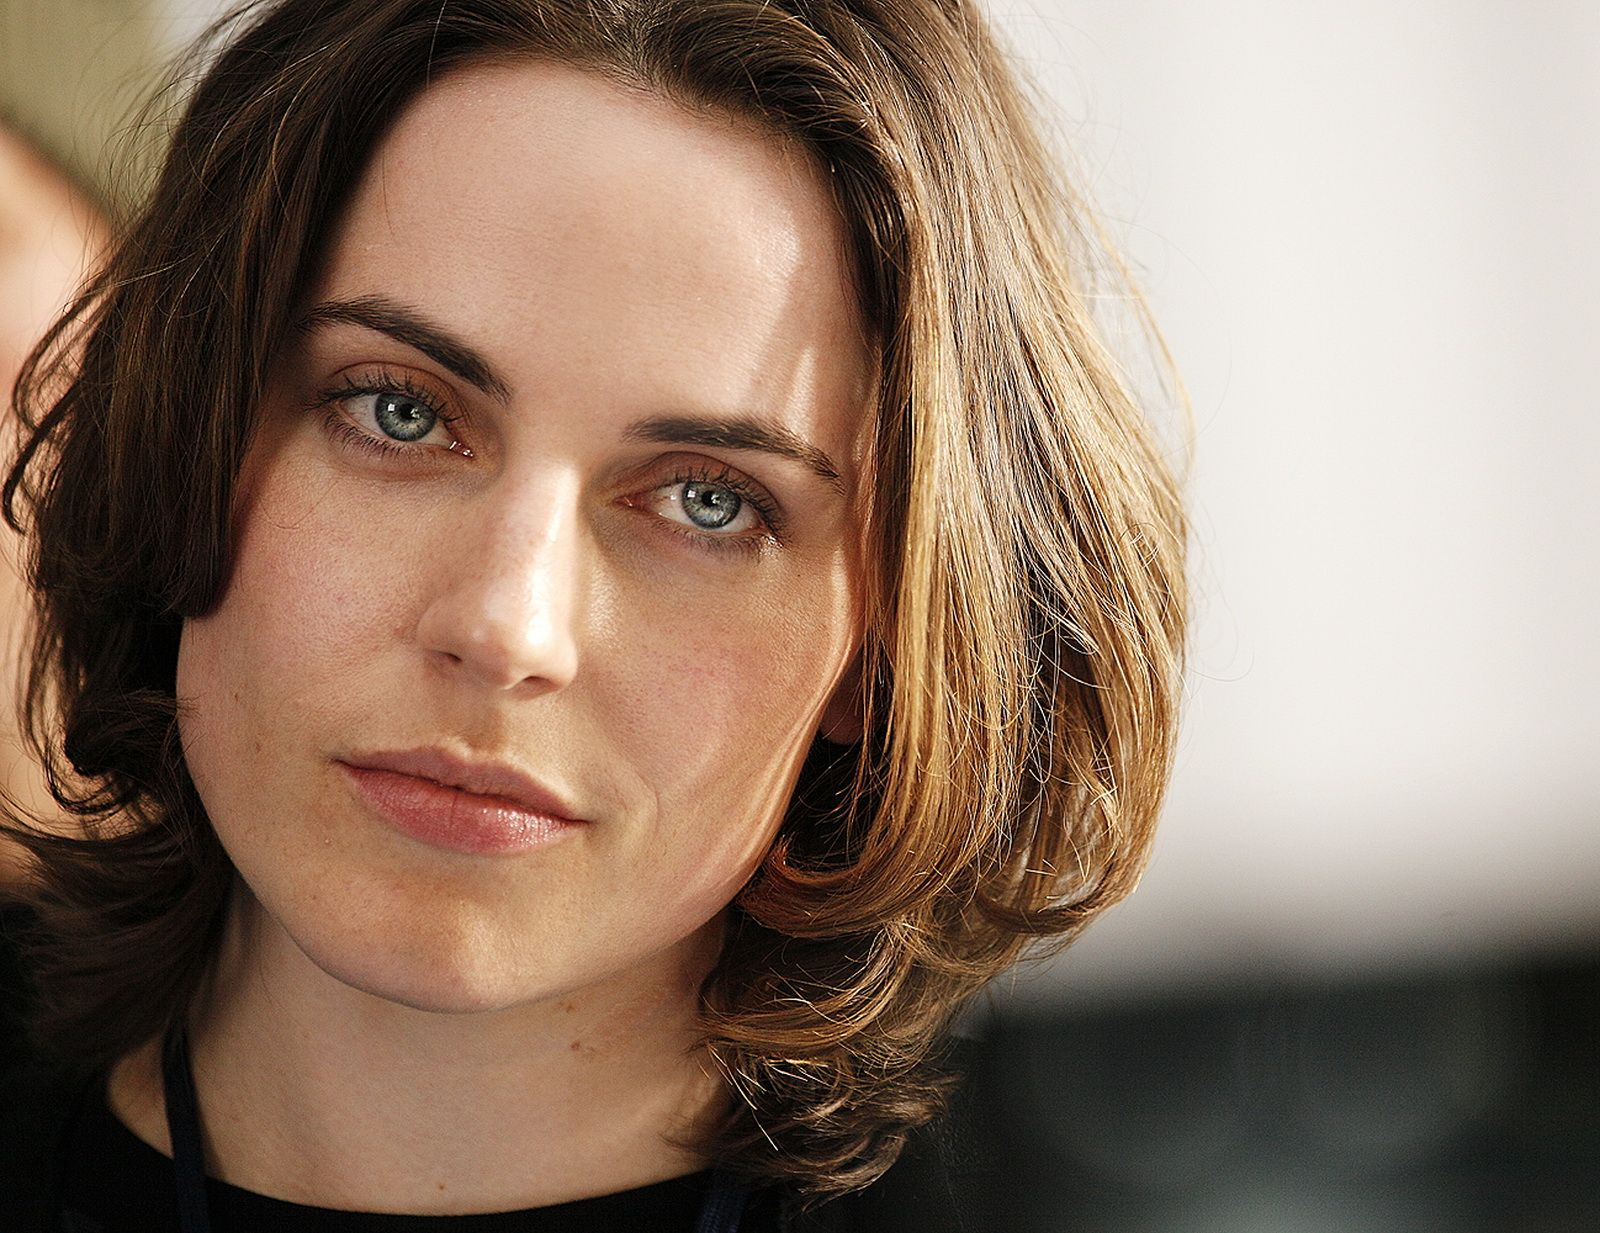 antje traue imdbantje traue pandorum, antje traue gif, antje traue 2016, antje traue seventh son, antje traue russian, antje traue interview, antje traue listal, antje traue vk, antje traue husband, antje traue imdb, antje traue instagram, antje traue man of steel, antje traue superman, antje traue forum, antje traue twitter